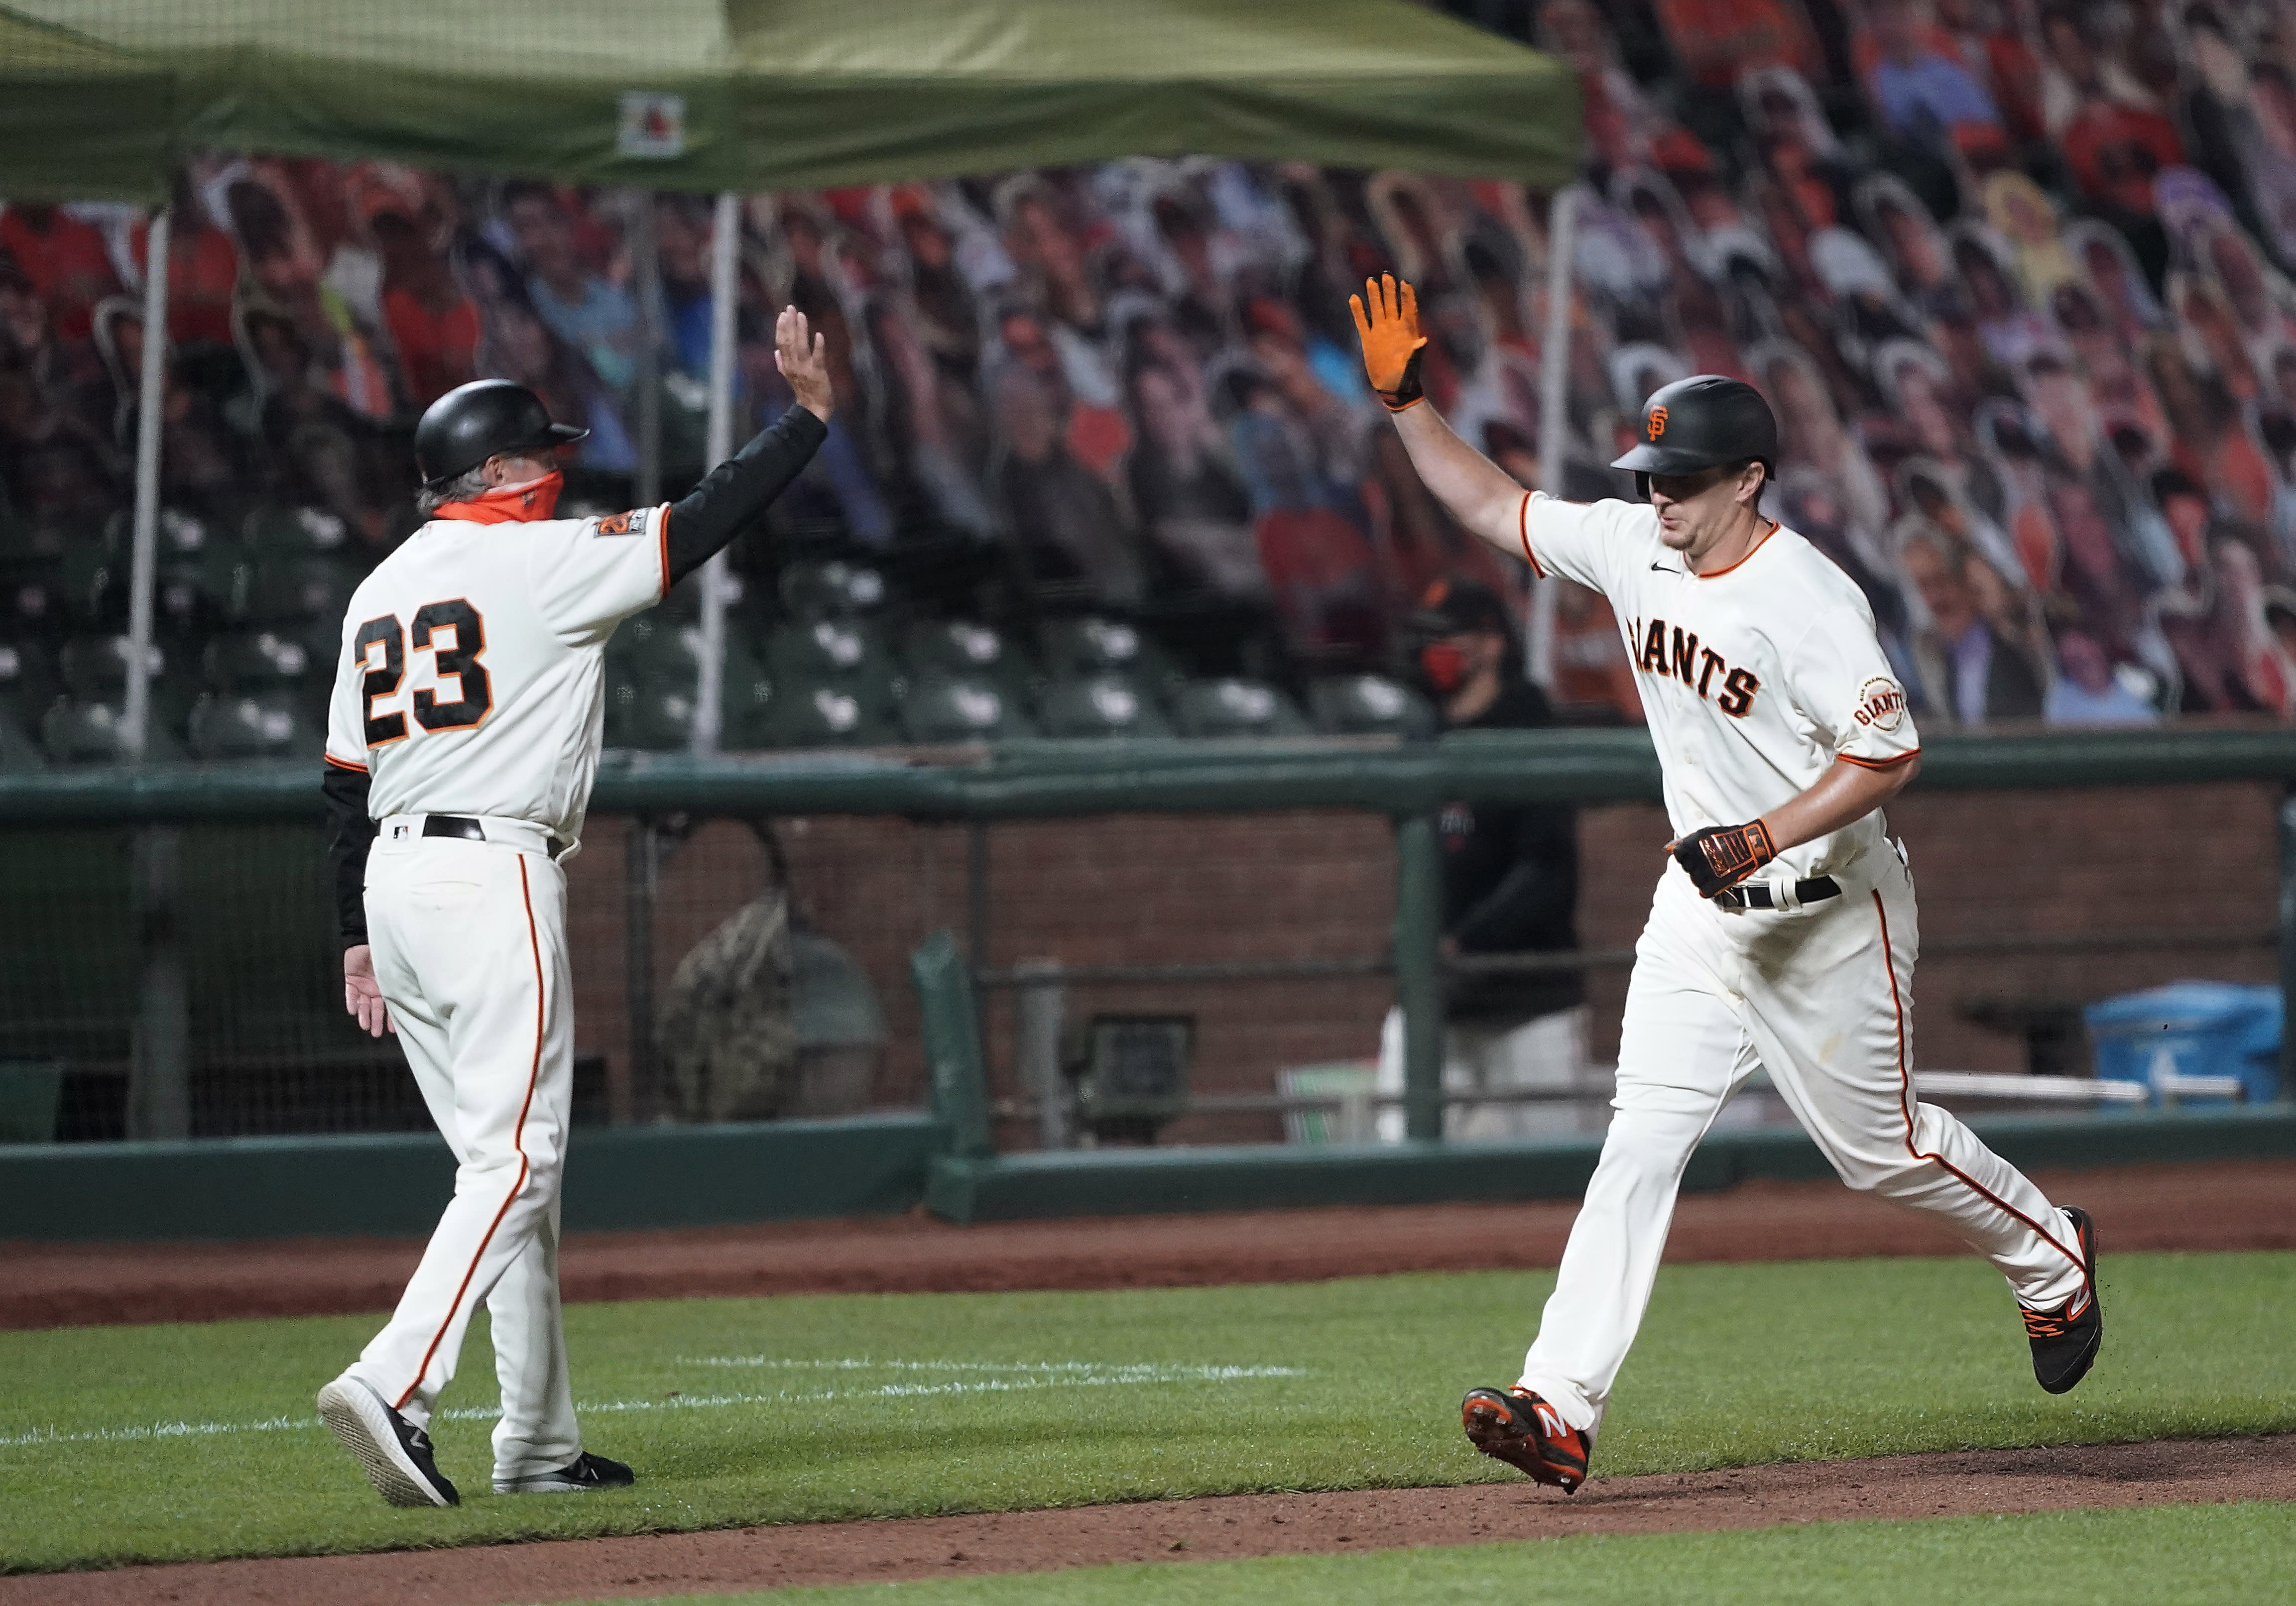 San Francisco Giants third base coach Ron Wotus, left, virtually high-fives Alex Dickerson, who runs the bases after hitting a solo home run against the Seattle Mariners during the third inning of a baseball game Tuesday, Sept. 8, 2020, in San Francisco. (AP Photo/Tony Avelar)